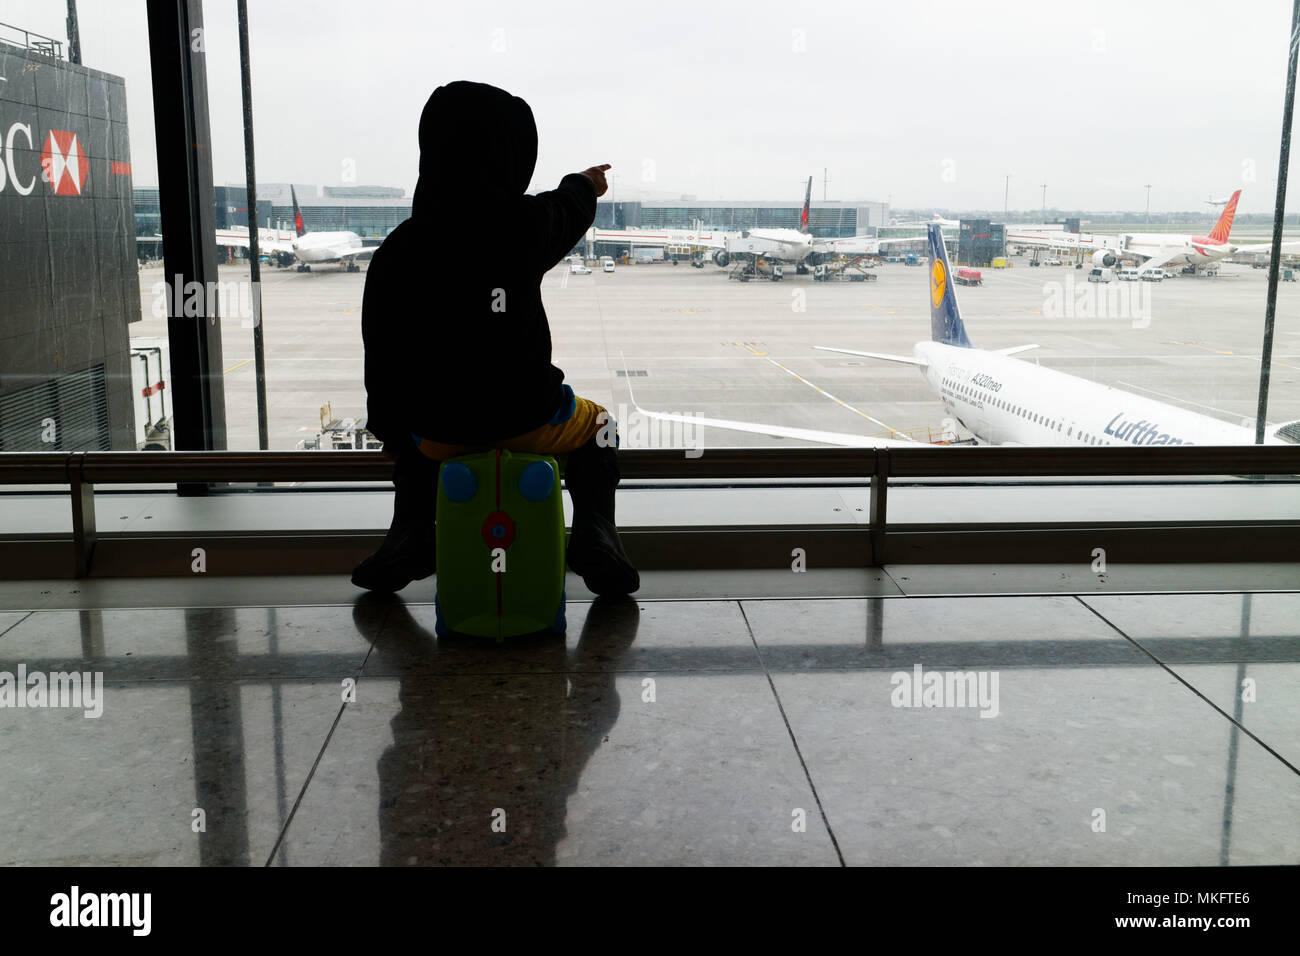 A young boy (5 yr old) sat on his suitcase looking at the planes at Heathrow airport - Stock Image